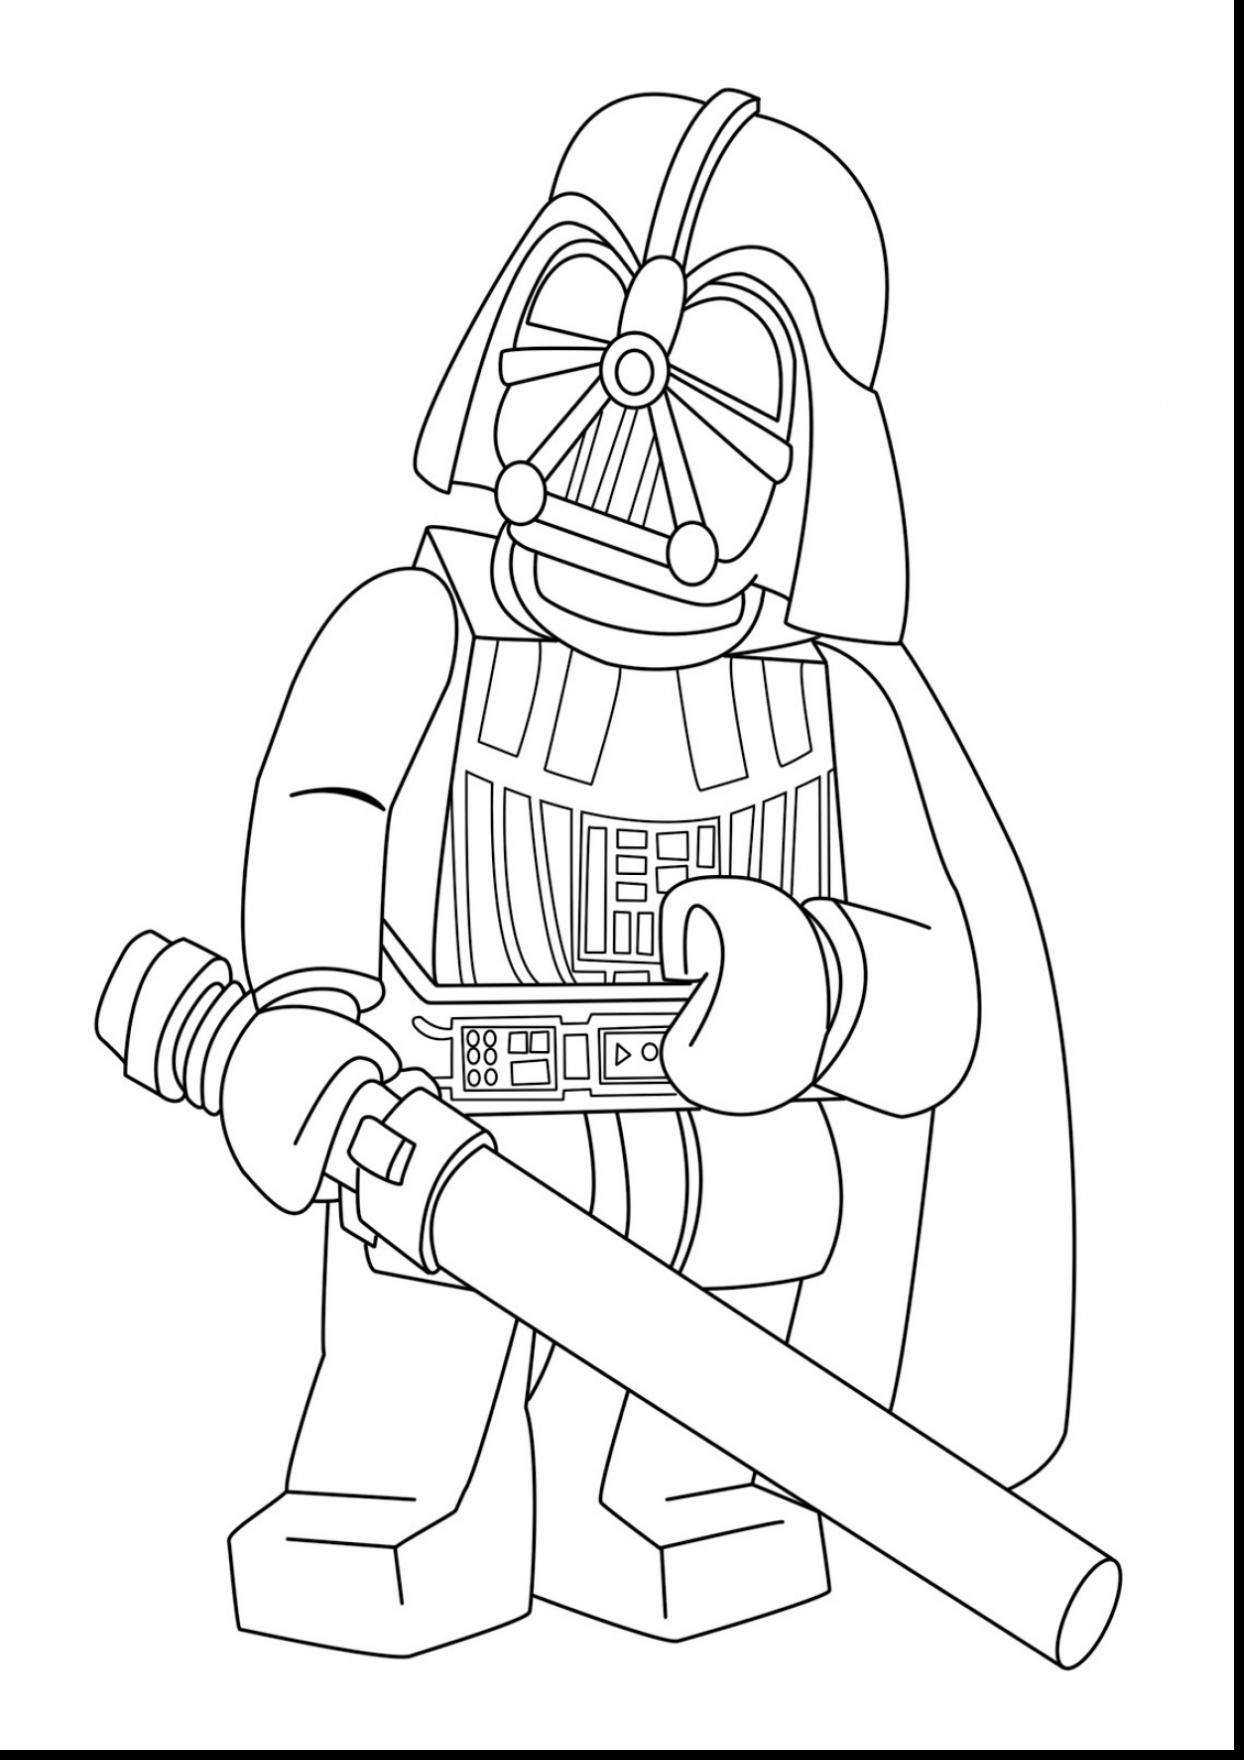 1244x1760 Star Wars Coloring Pages The Force Awakens Coloring Pages New